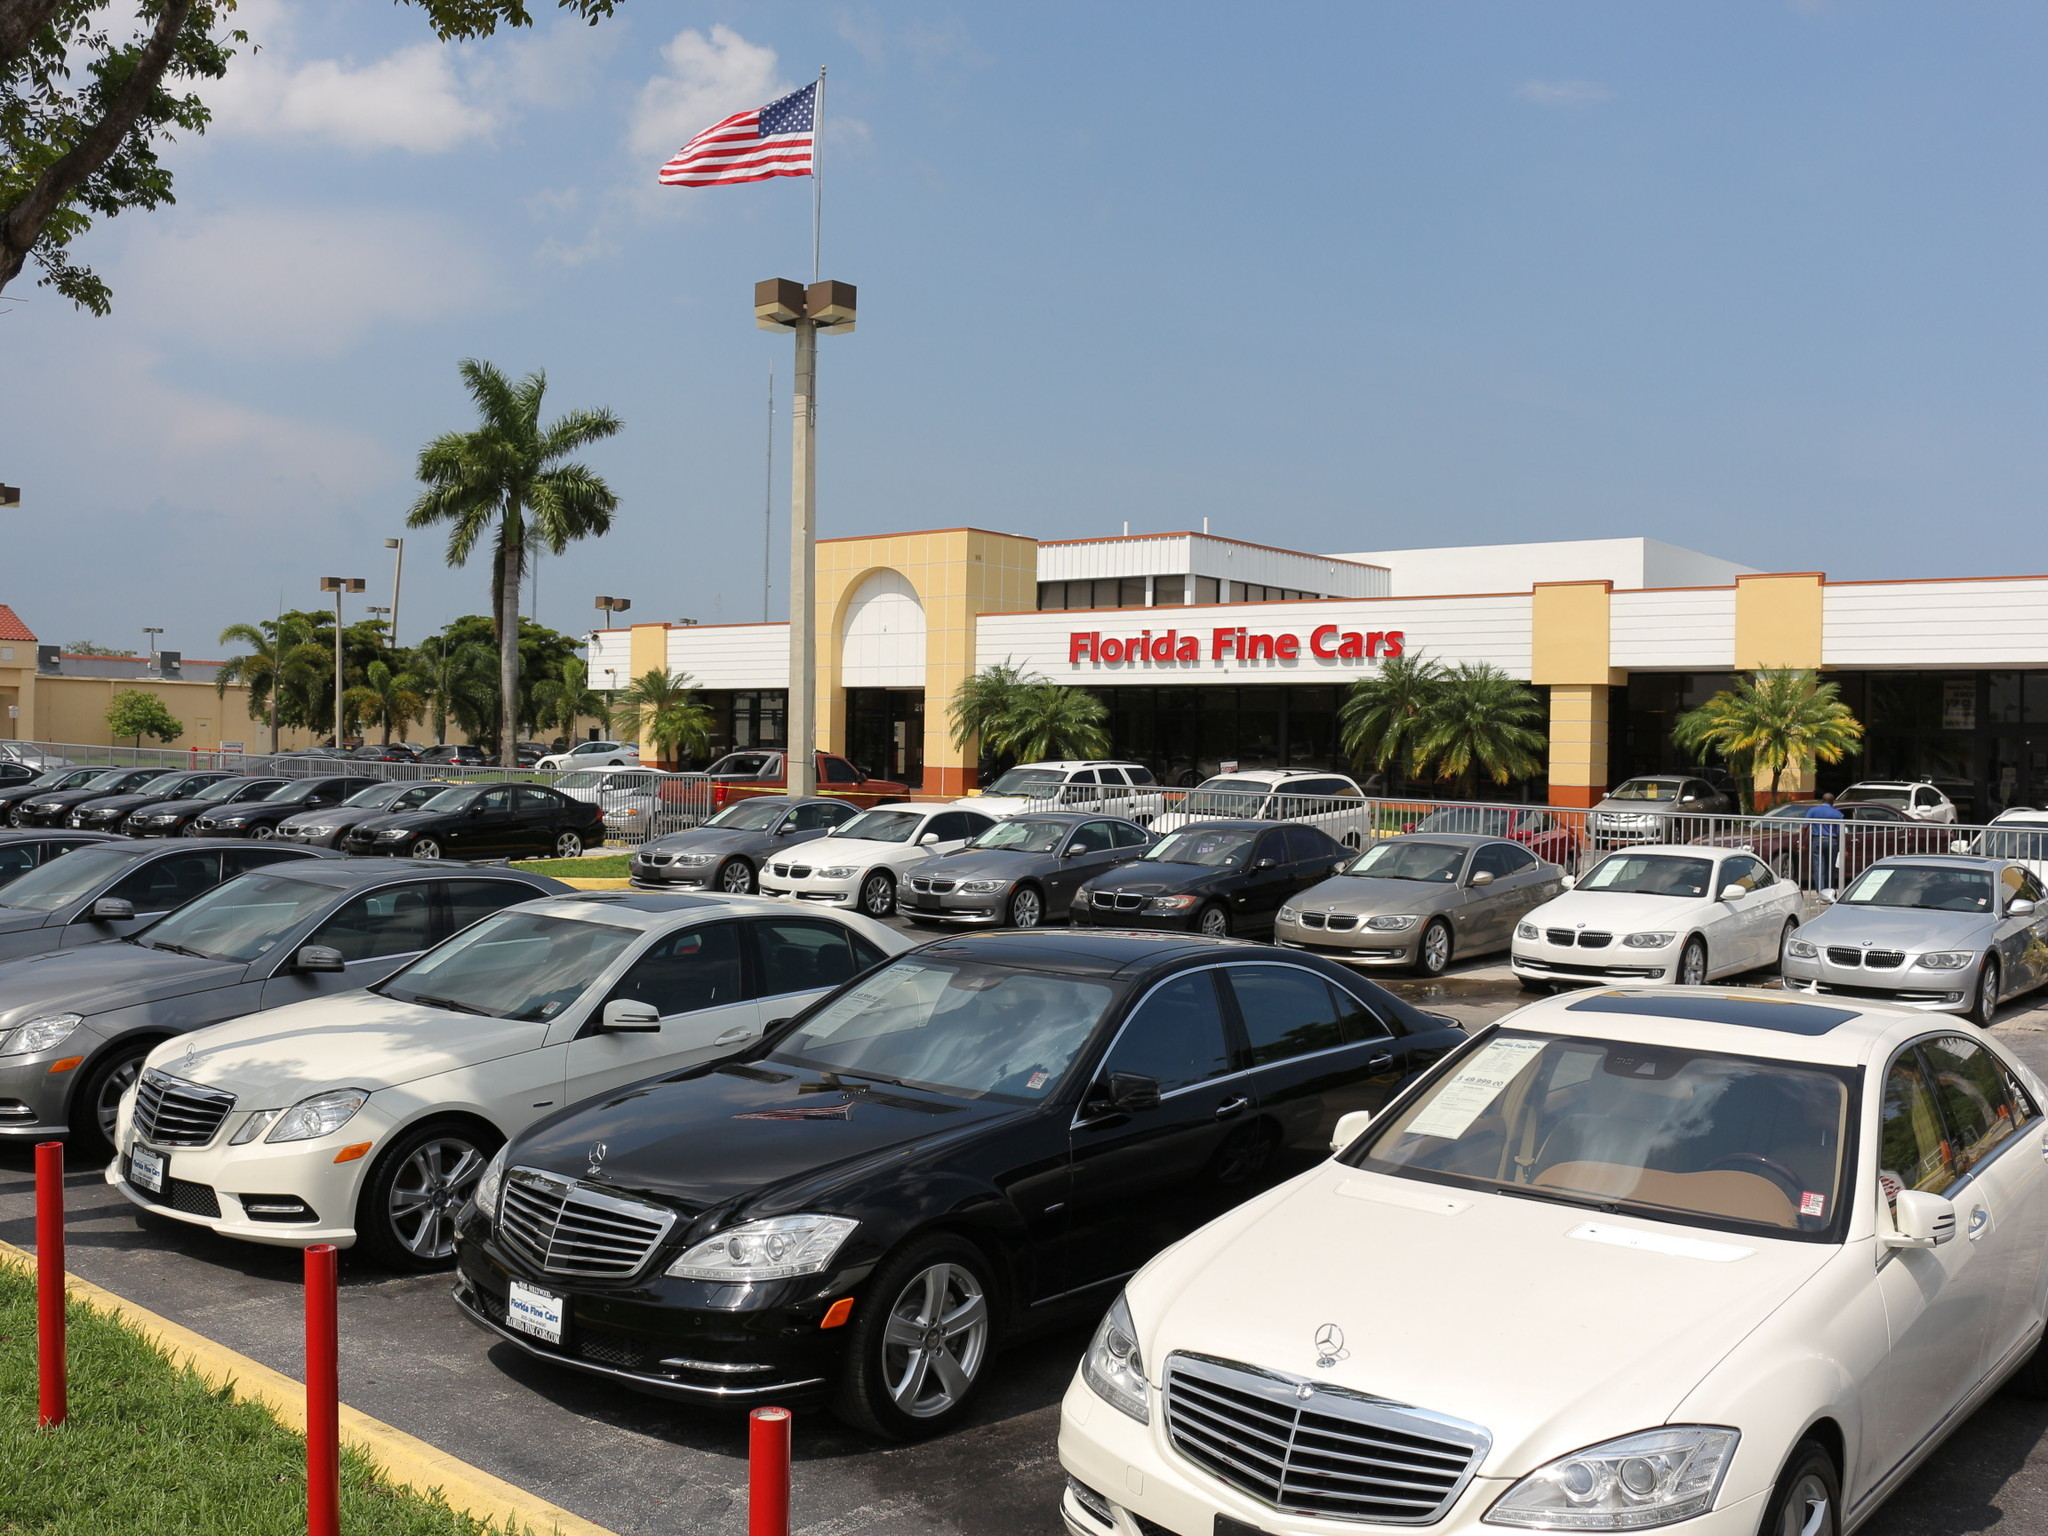 As Used Car Sales Boom Florida Fine Cars To Open In West